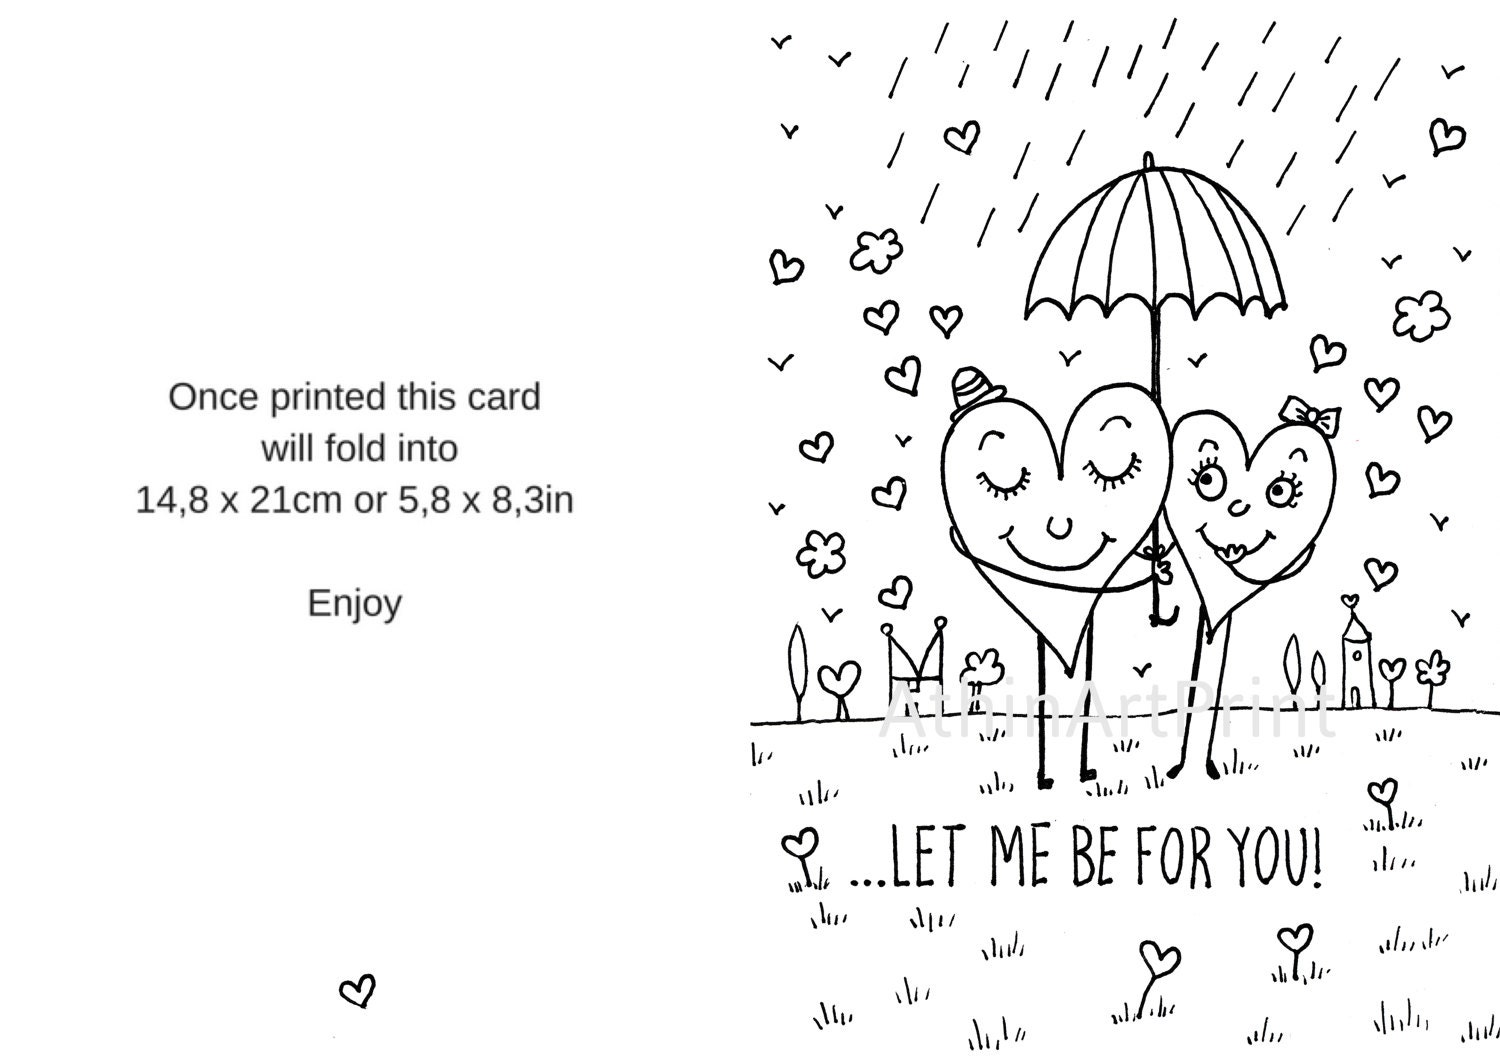 printable valentine card love greeting cards coloring cards love card romantic card